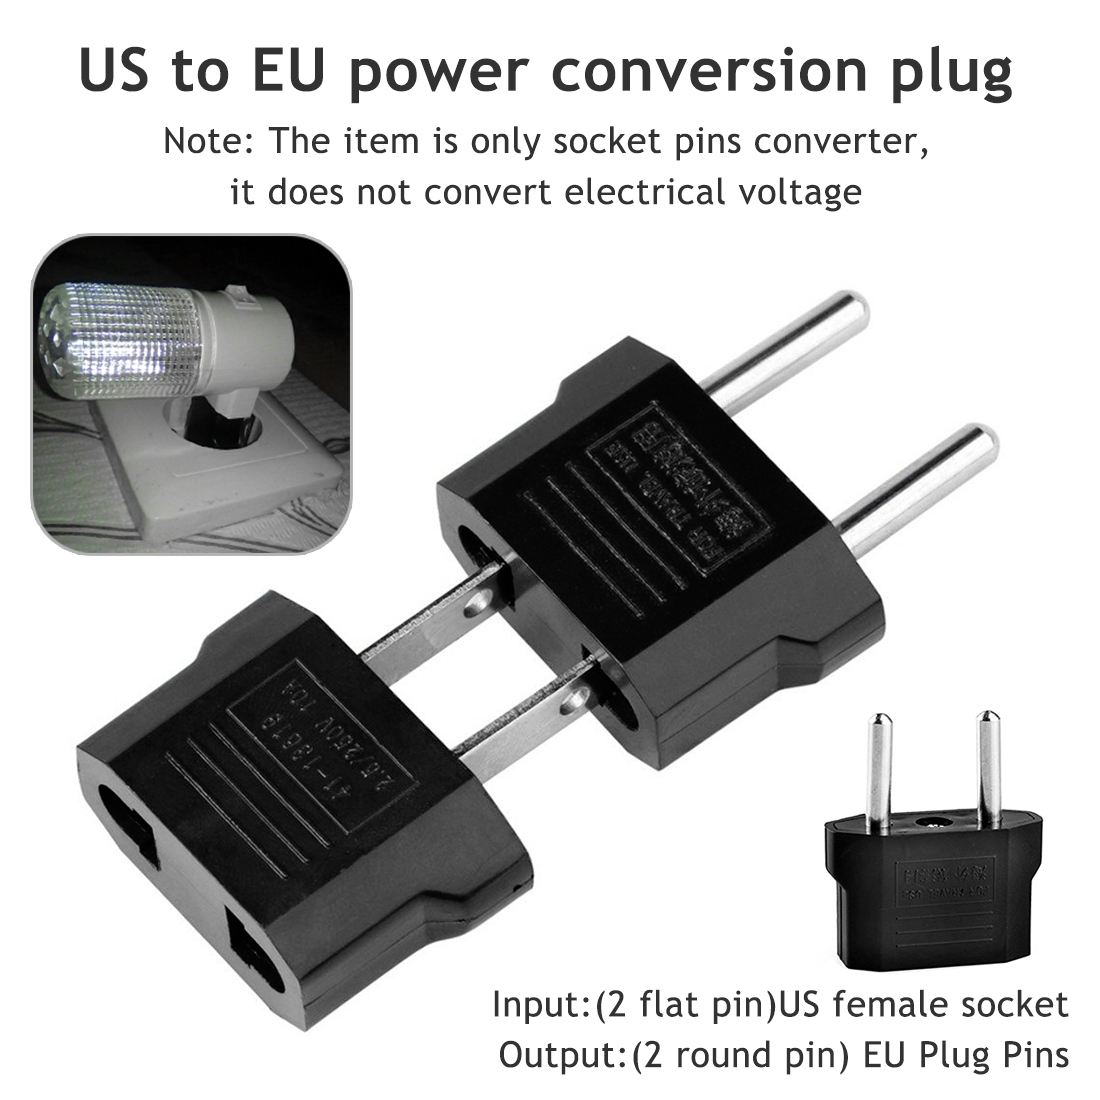 european-eu-power-electric-plug-adapter-american-china-japan-us-to-eu-euro-travel-adapter-ac-power-cord-charger-sockets-outlet